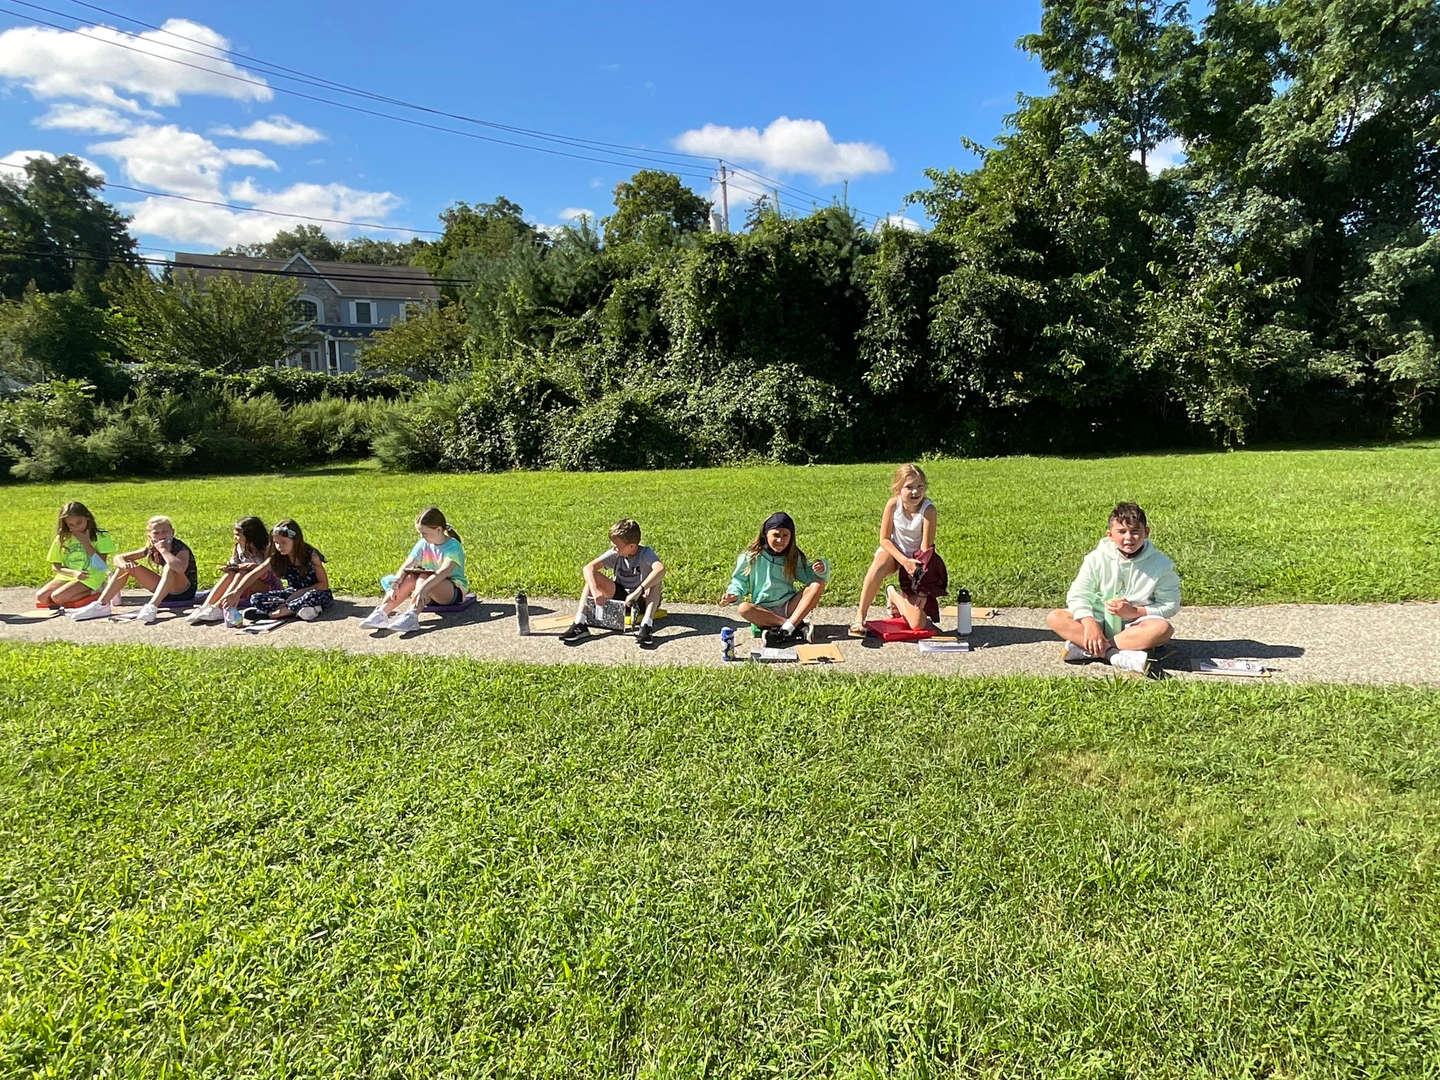 Students eating snack outside